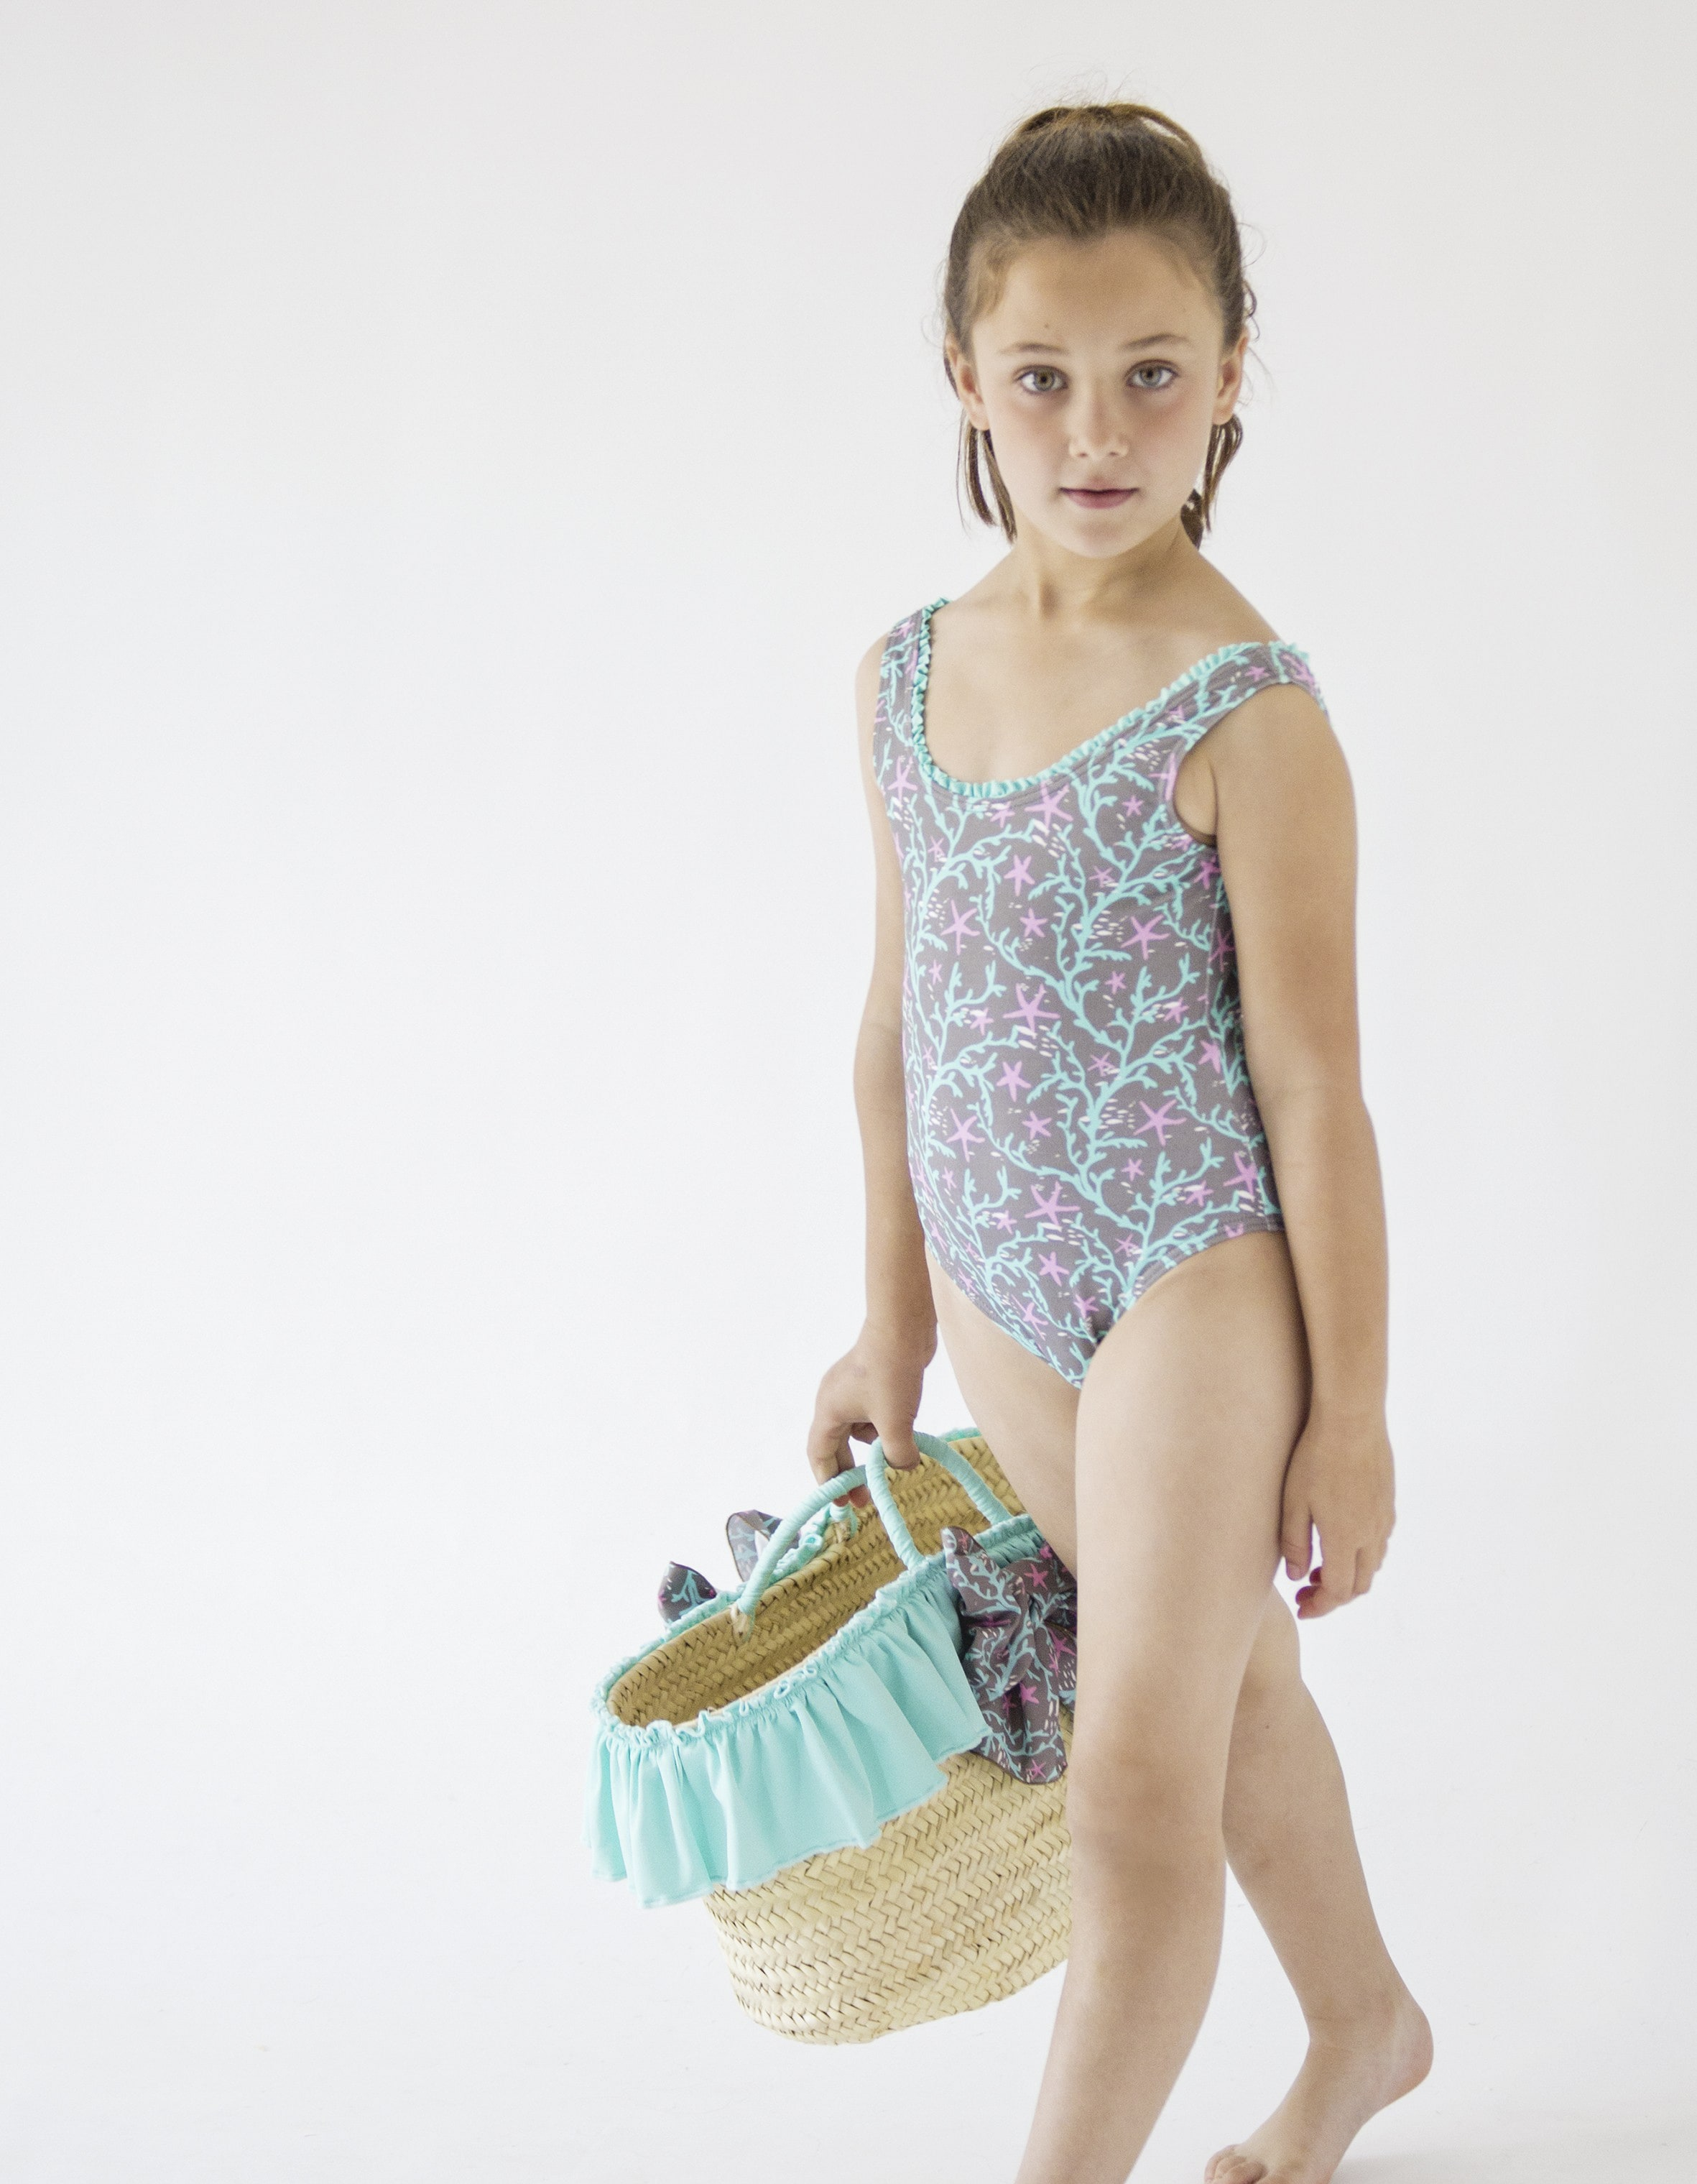 GIRLS CORAL REEF SWIMSUIT by Nueces Kids